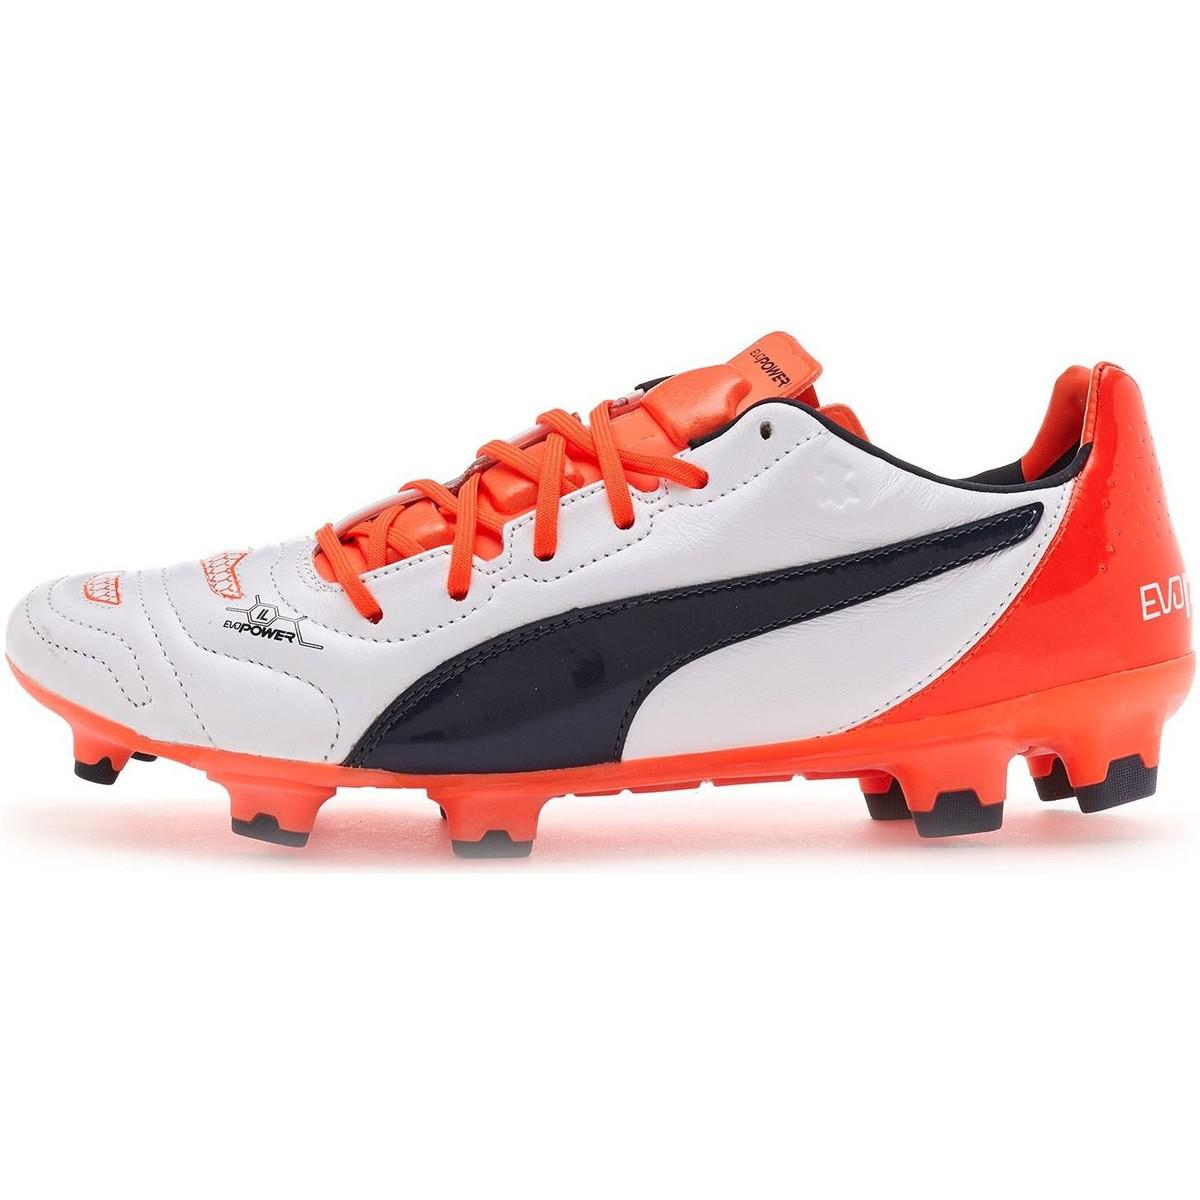 7c8dd84033a Puma Evopower 1.2 Football Boots Soccer Cleats In White Orange 103 ...